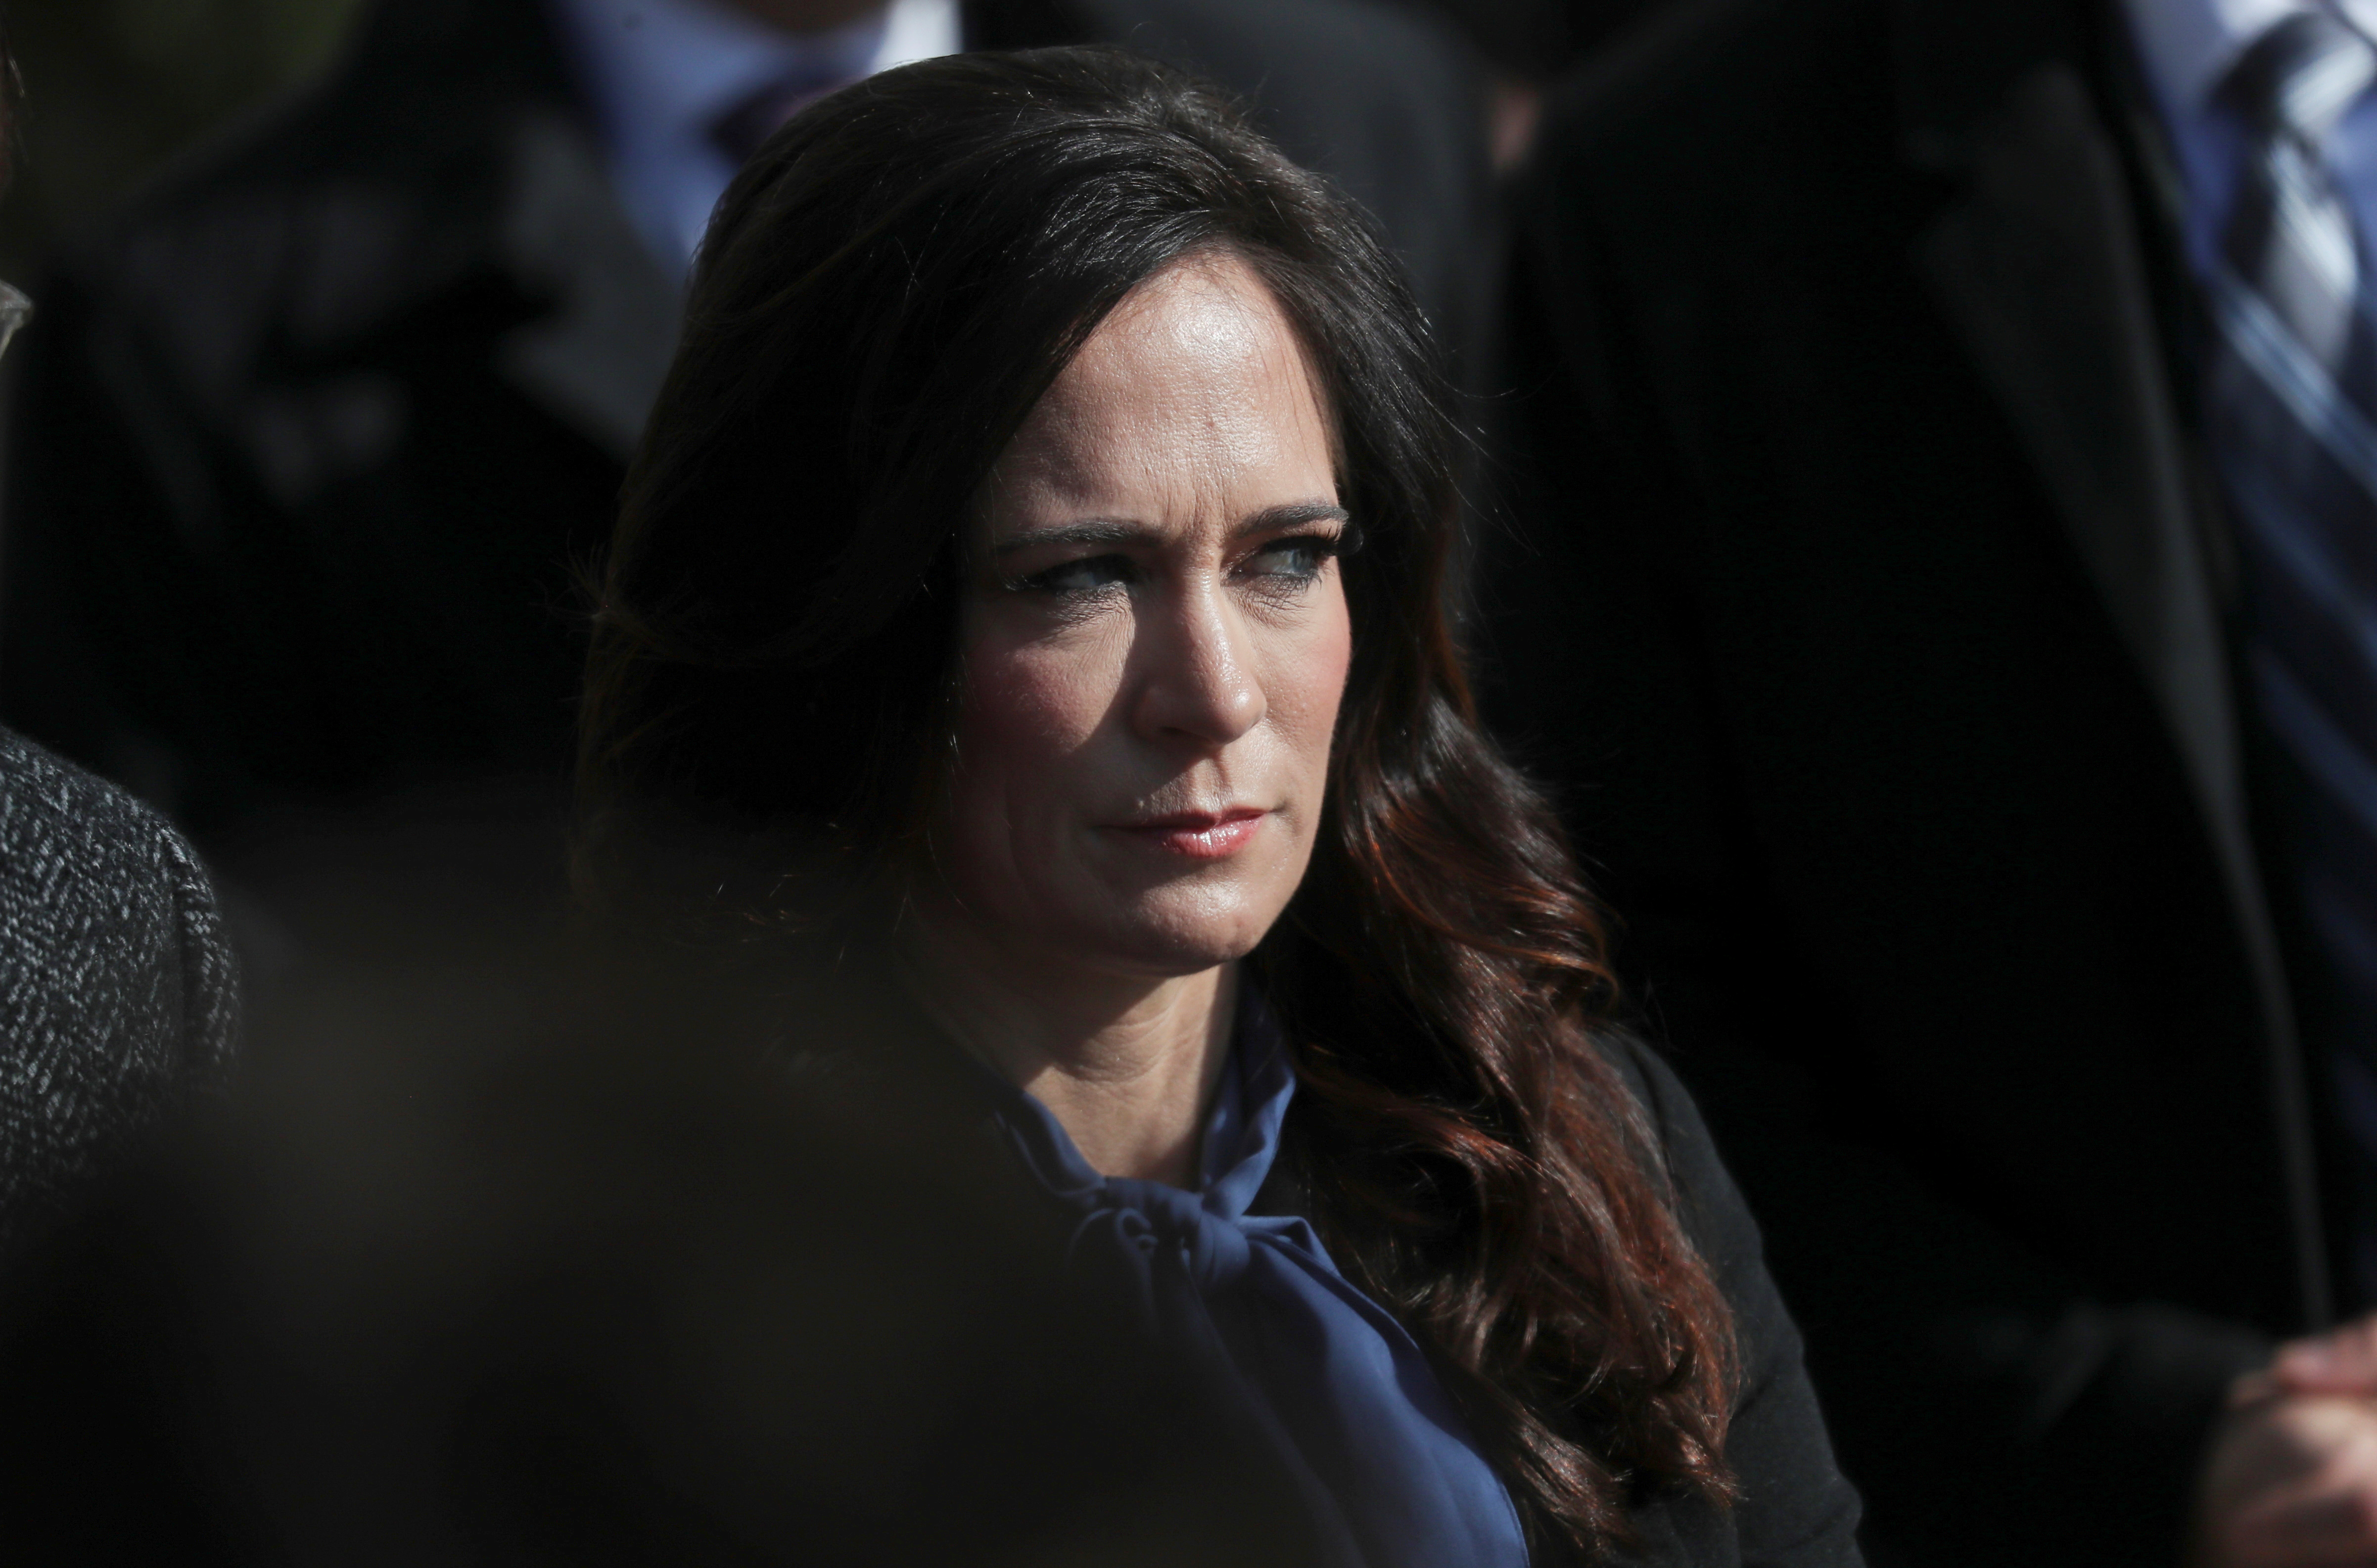 White House Press Secretary Stephanie Grisham listens to U.S. President Donald Trump talk to reporters as he departs for travel to Georgia from the South Lawn of the White House in Washington, U.S., November 8, 2019. REUTERS/Leah Millis/File Photo